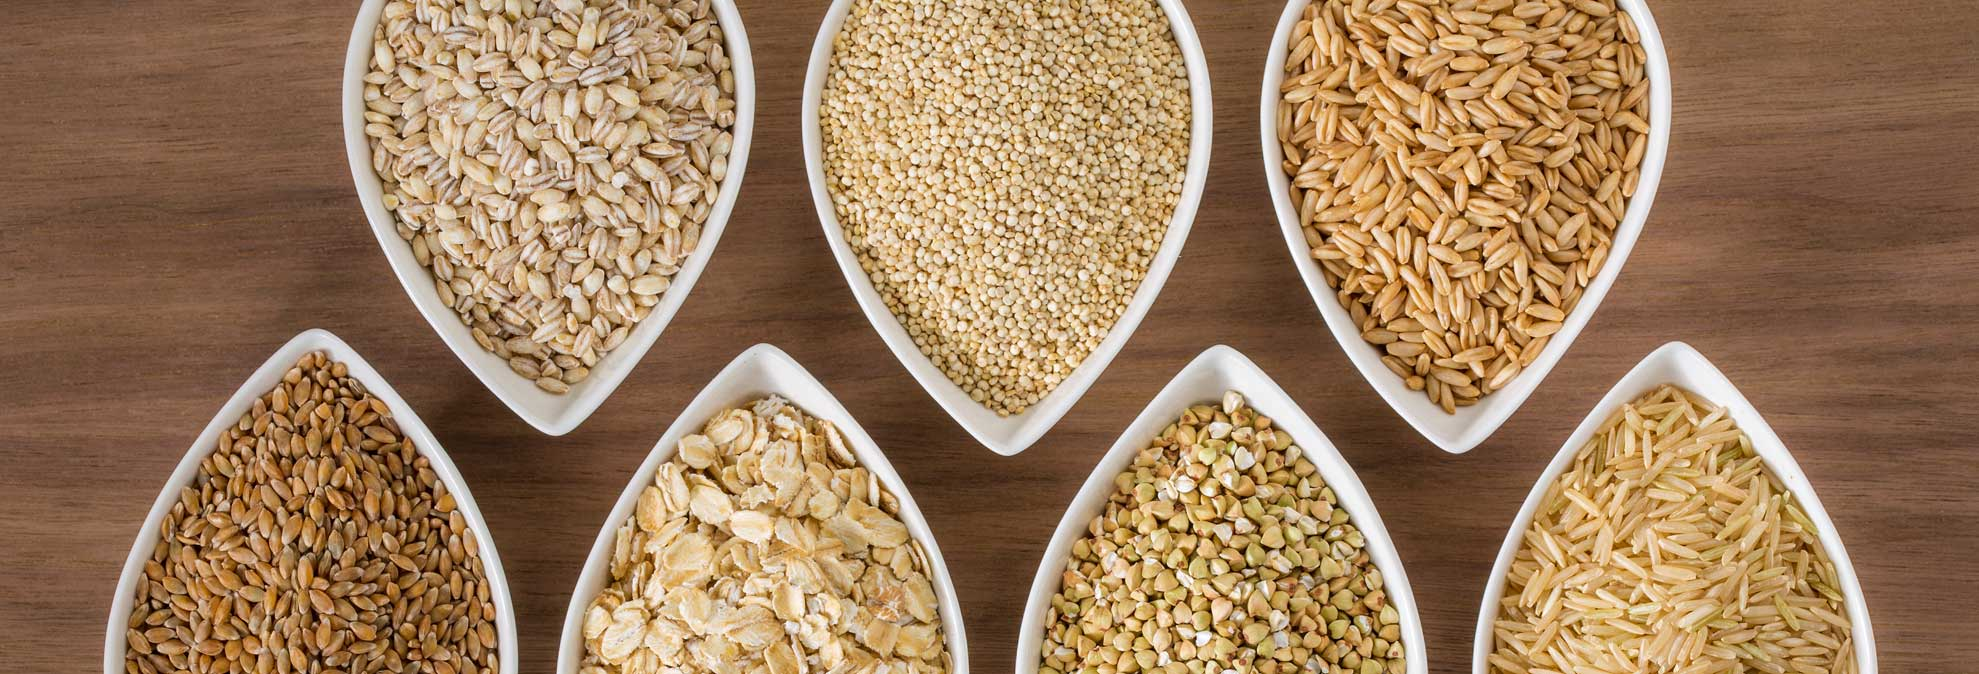 The Right Way To Get Your Whole Grains Consumer Reports